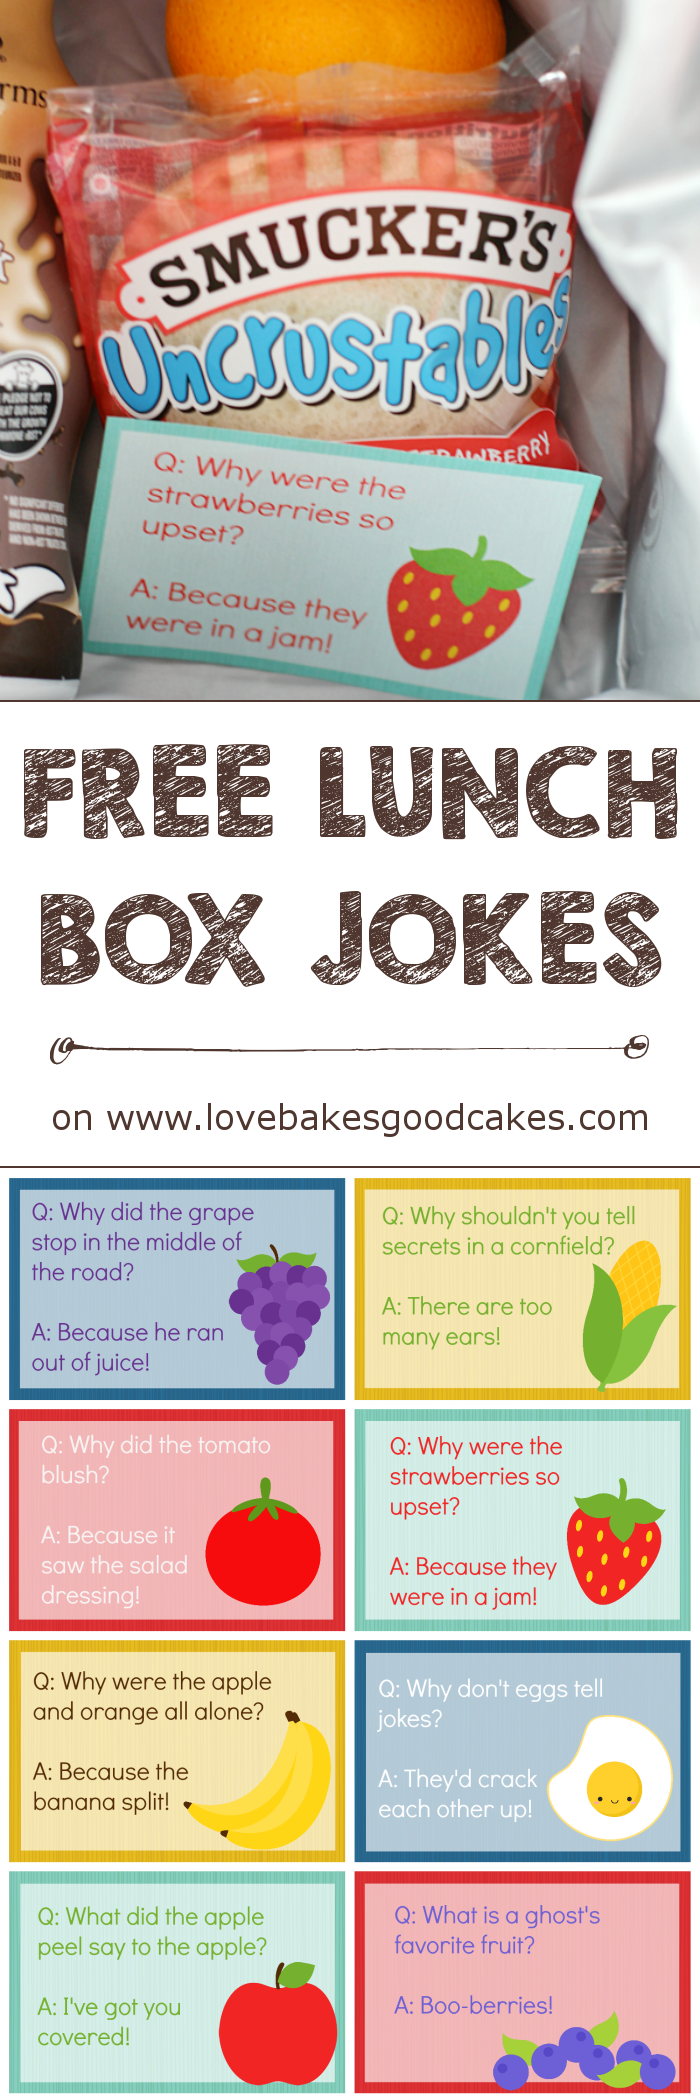 Make lunchtime more fun with these FREE Lunch Box Jokes and Smucker's Uncrustables collage.